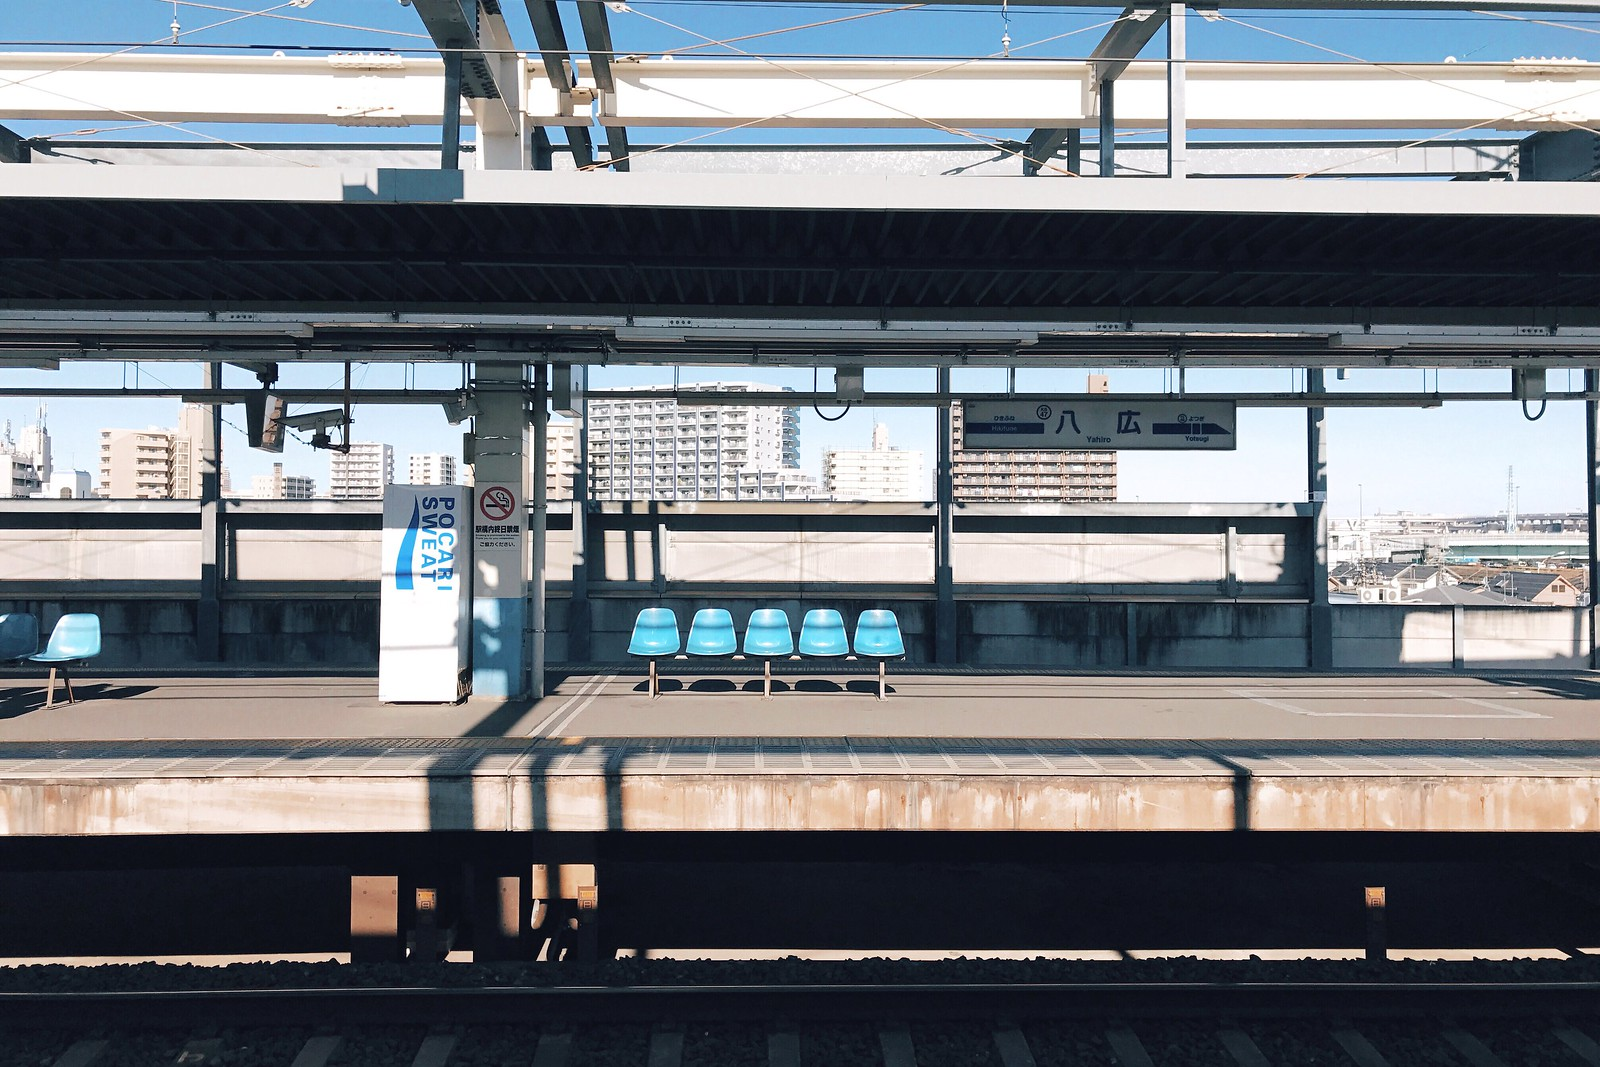 Yahiro station by iPhone 7 with RNI Films.app